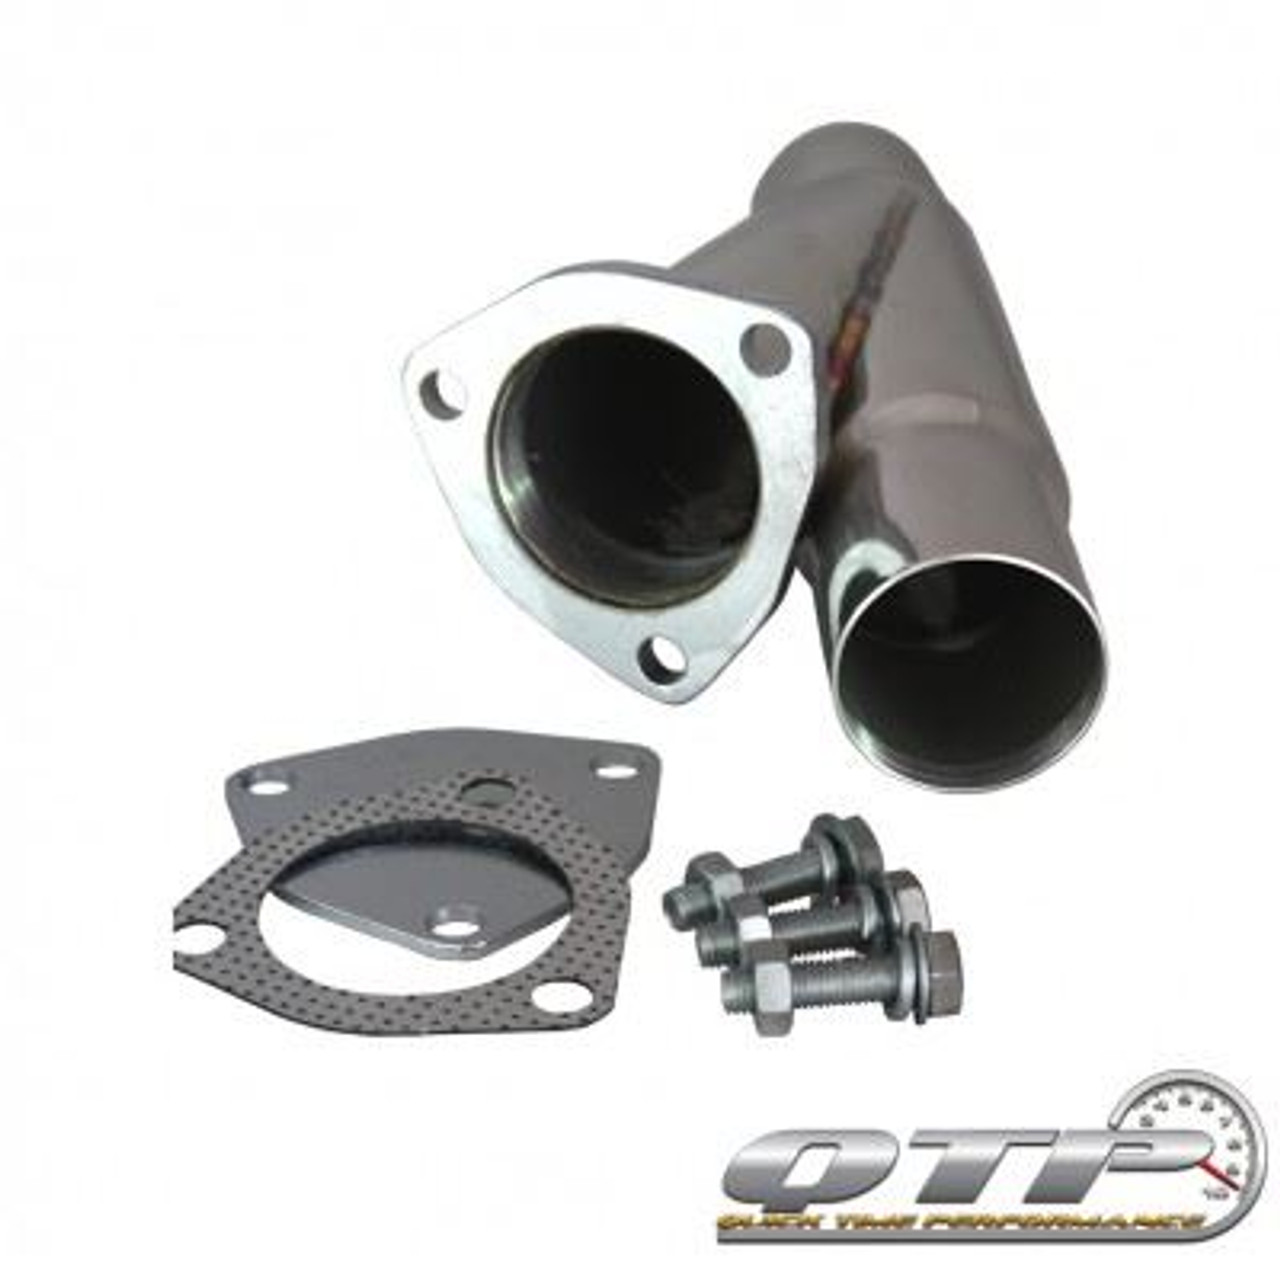 qtp 10225 2 25 2 1 4 stainless steel exhaust cutout y pipe with cap